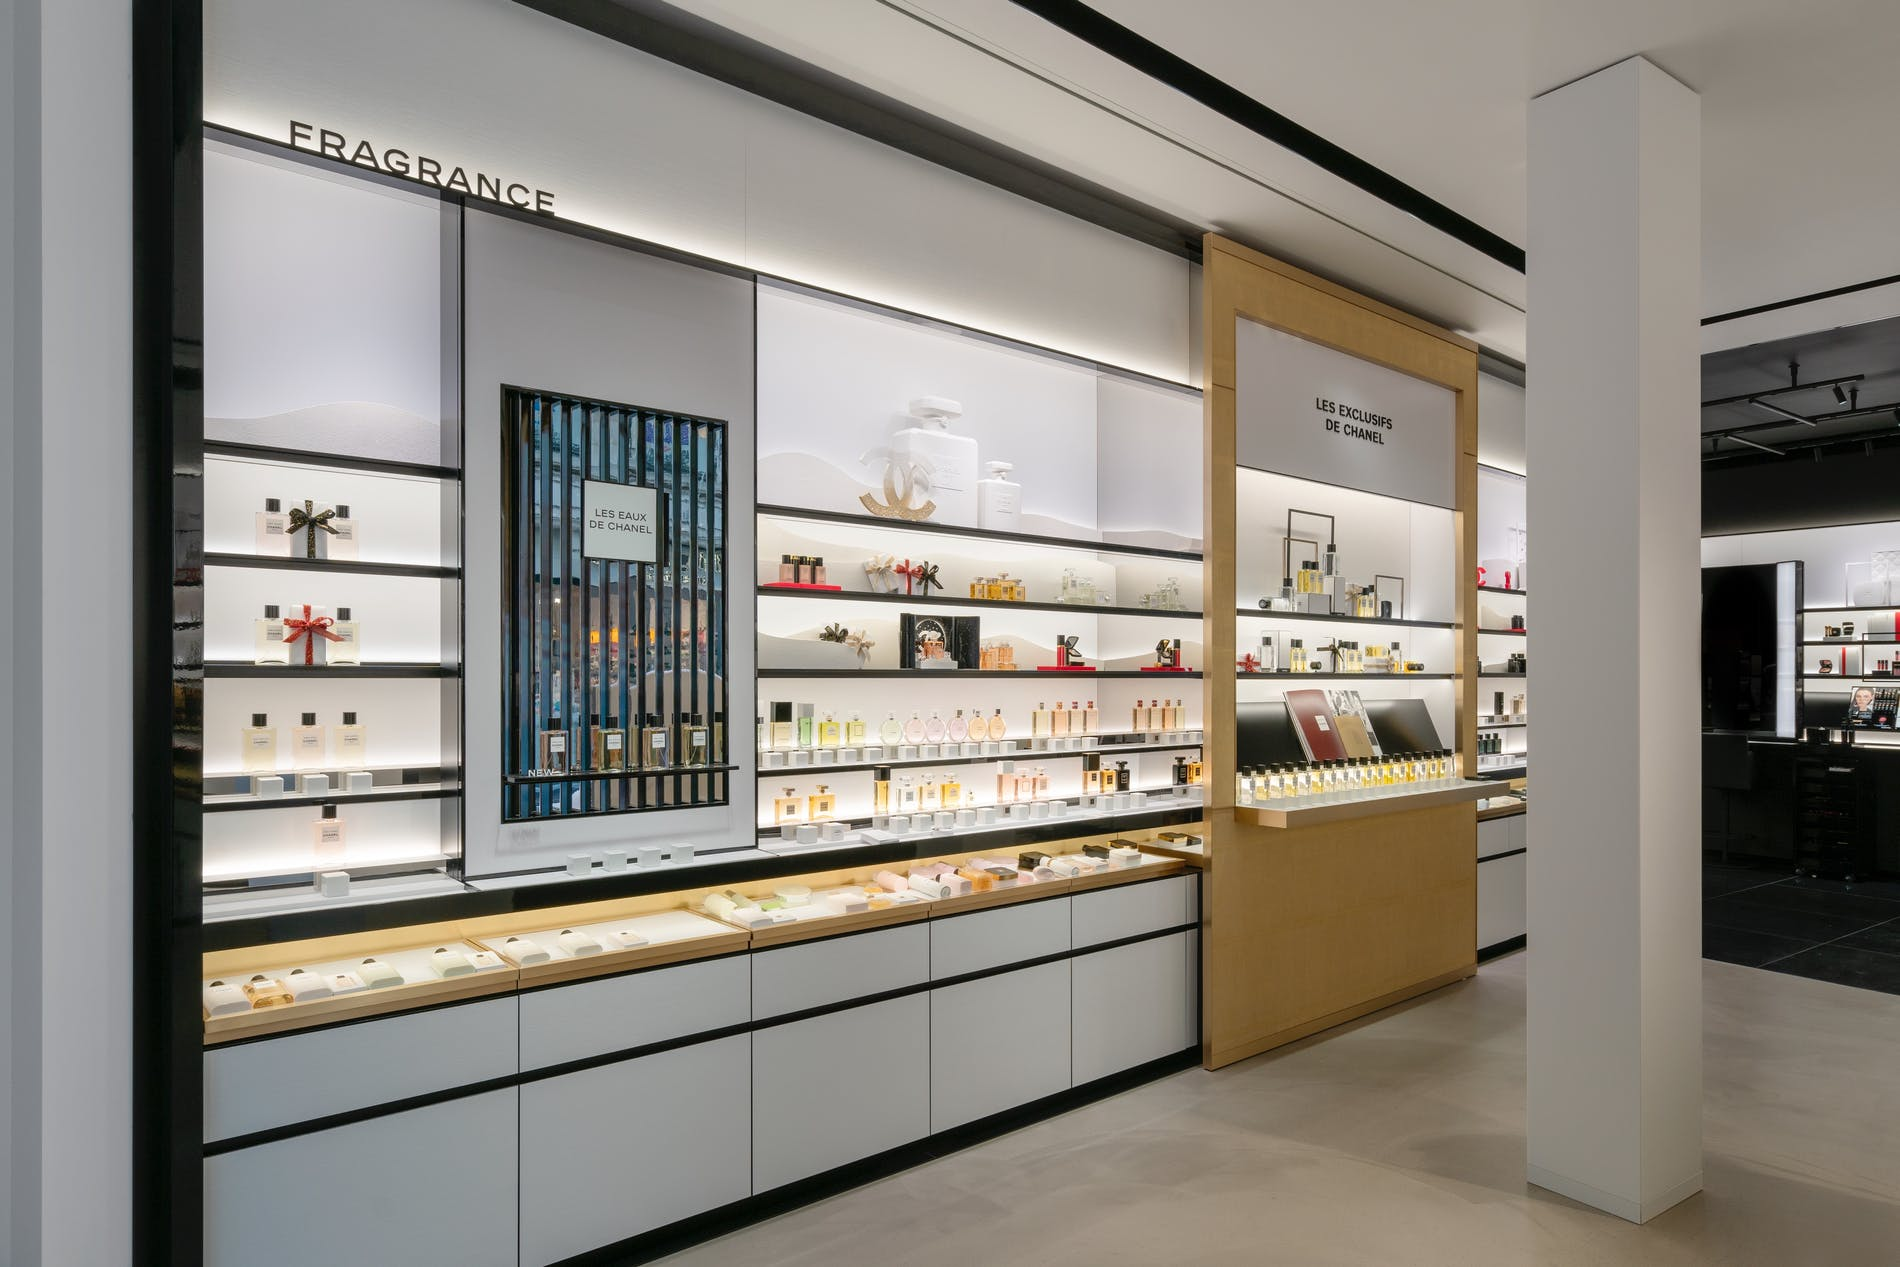 1573212718059979 chanel fragrance and beauty boutique antwerpen 003